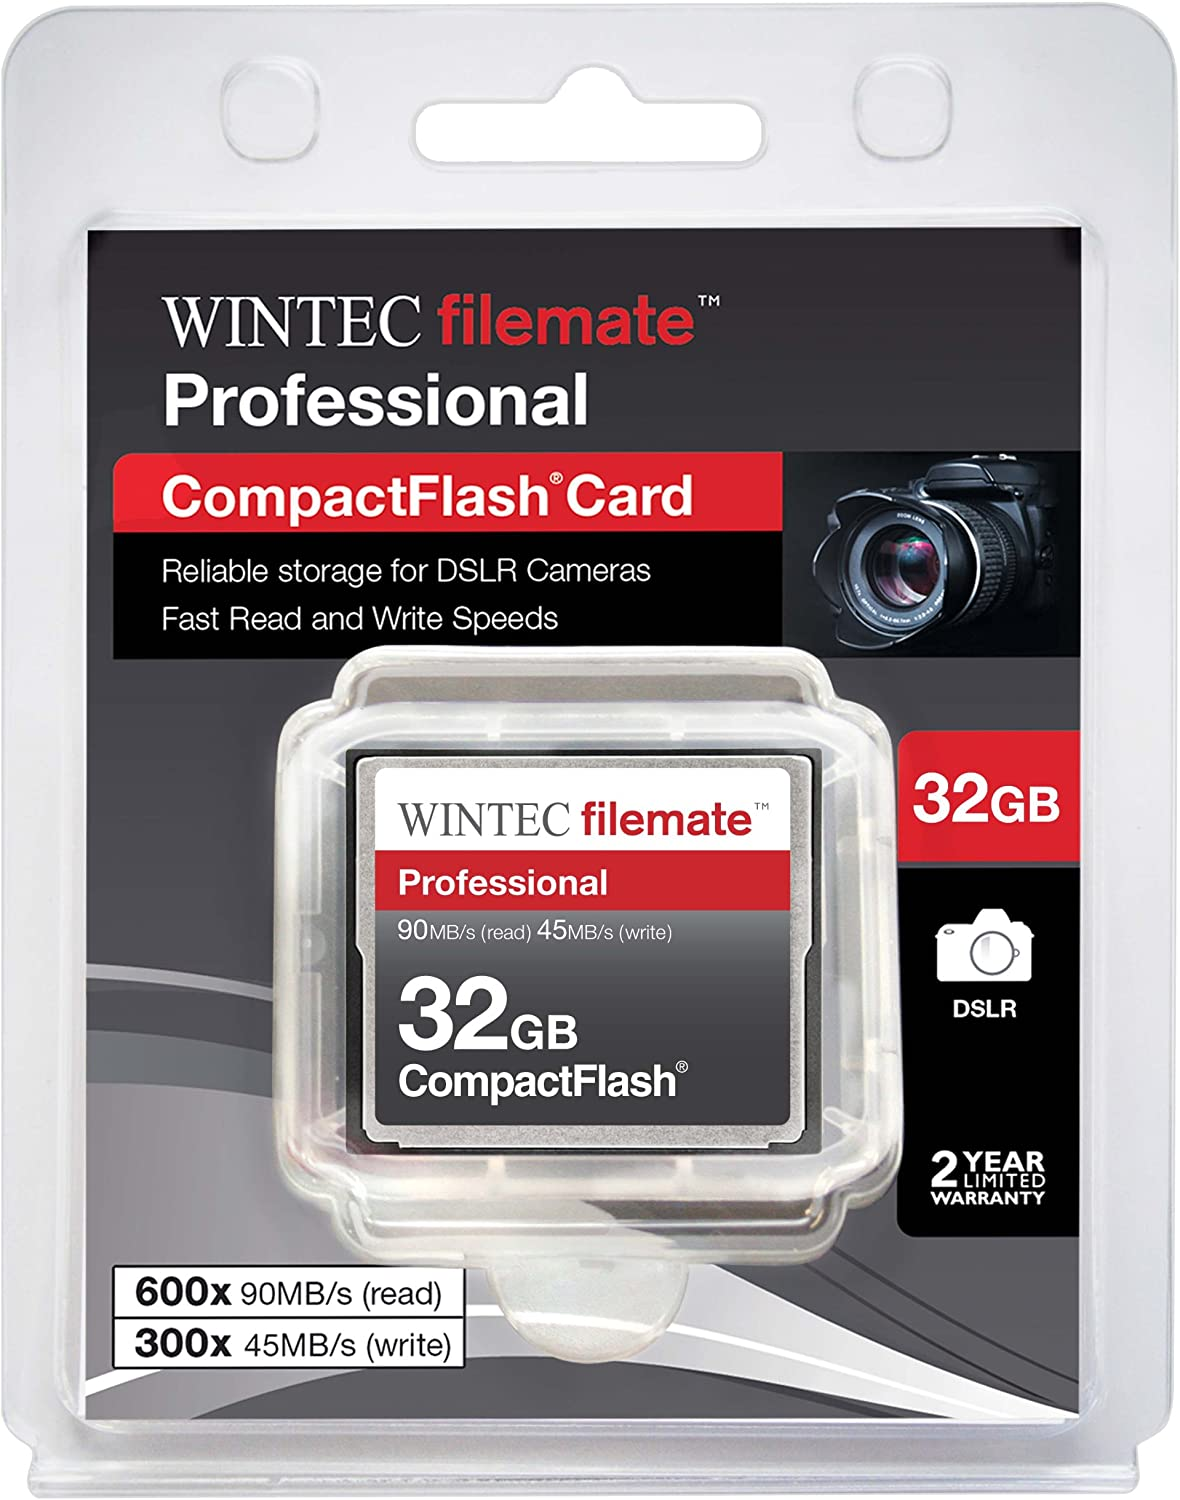 Blazing Fast 600X Card with all in one Hot Deals 4 Less Card Reader and Life Time Warranty. 32GB Professional CF Memory Card for Nikon D300S Cameras